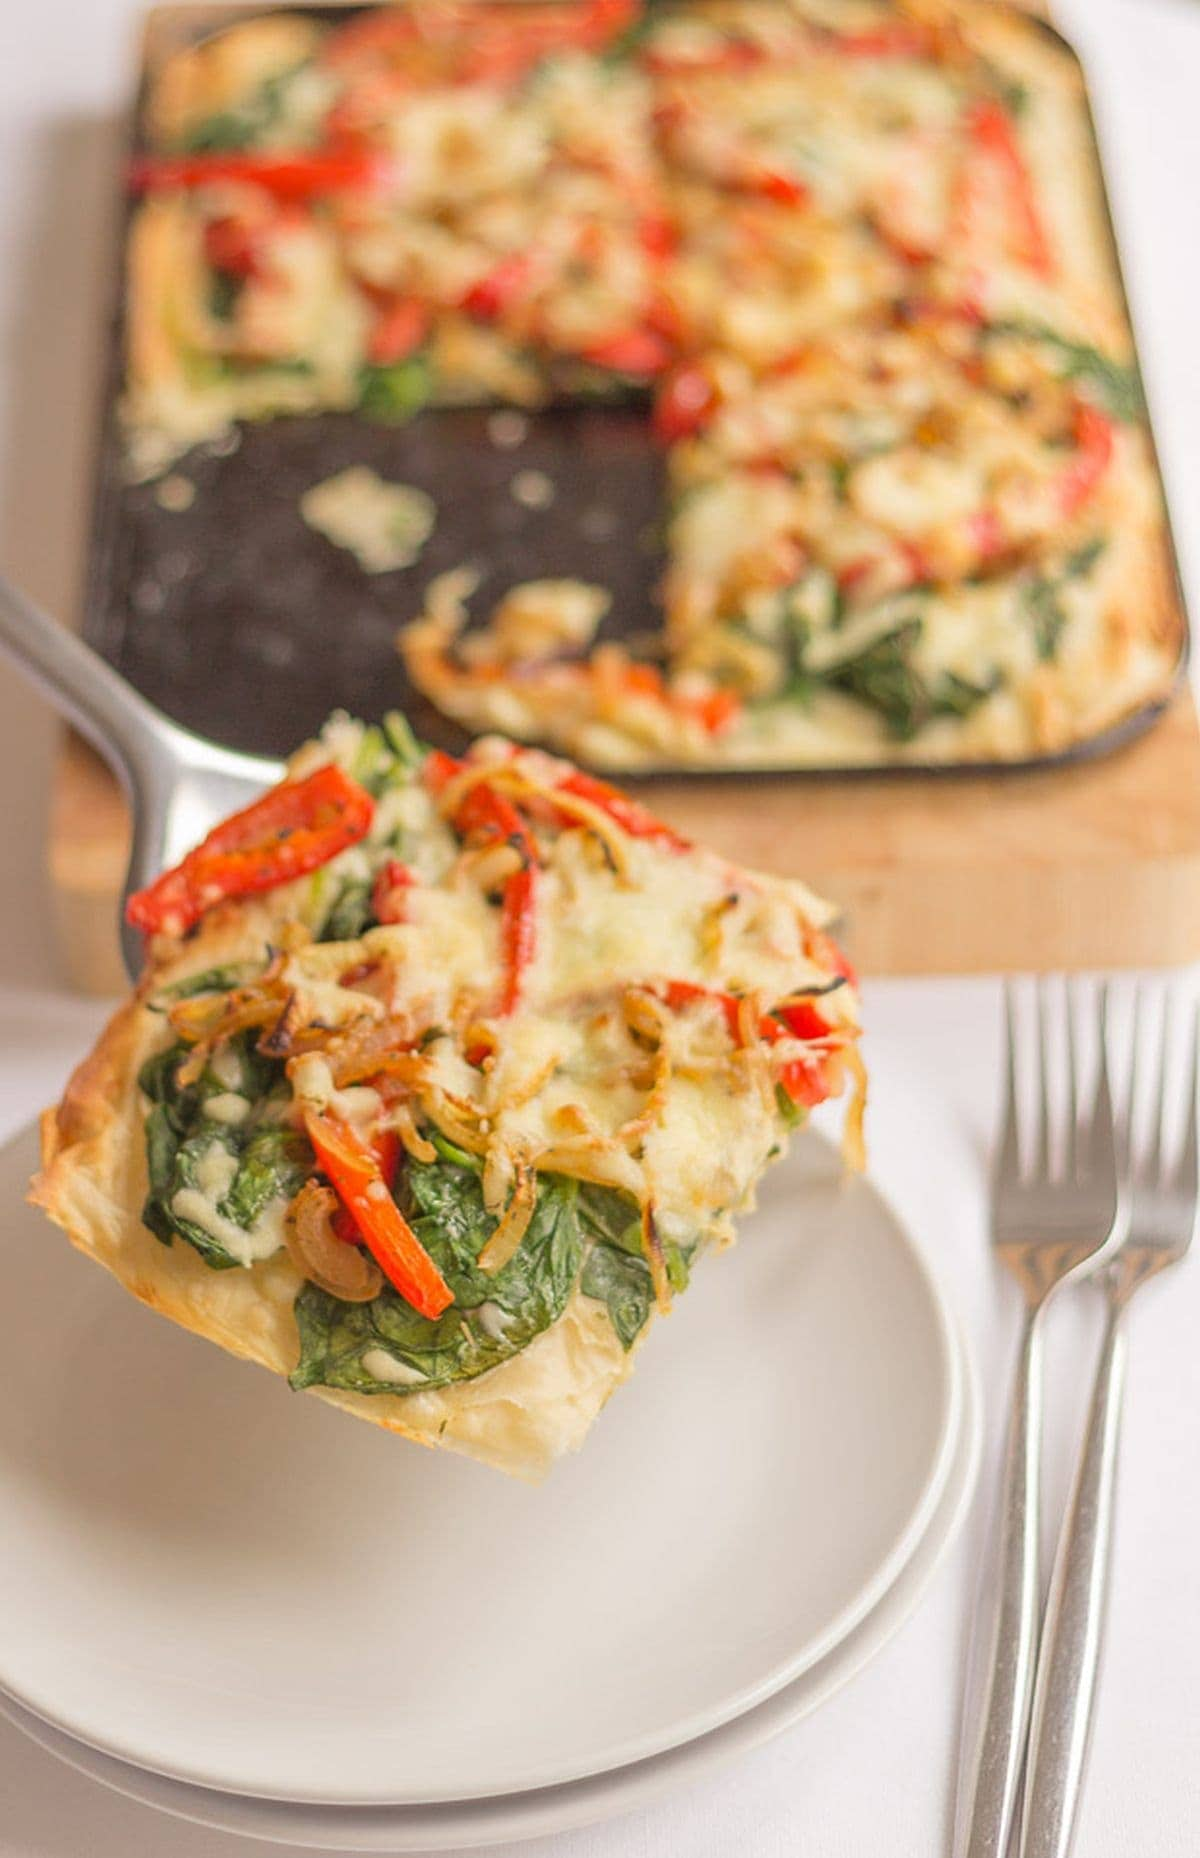 A slice of red pepper and spinach filo tart being lifted onto a plate by a slce from the red of the tart on the tray in the background.